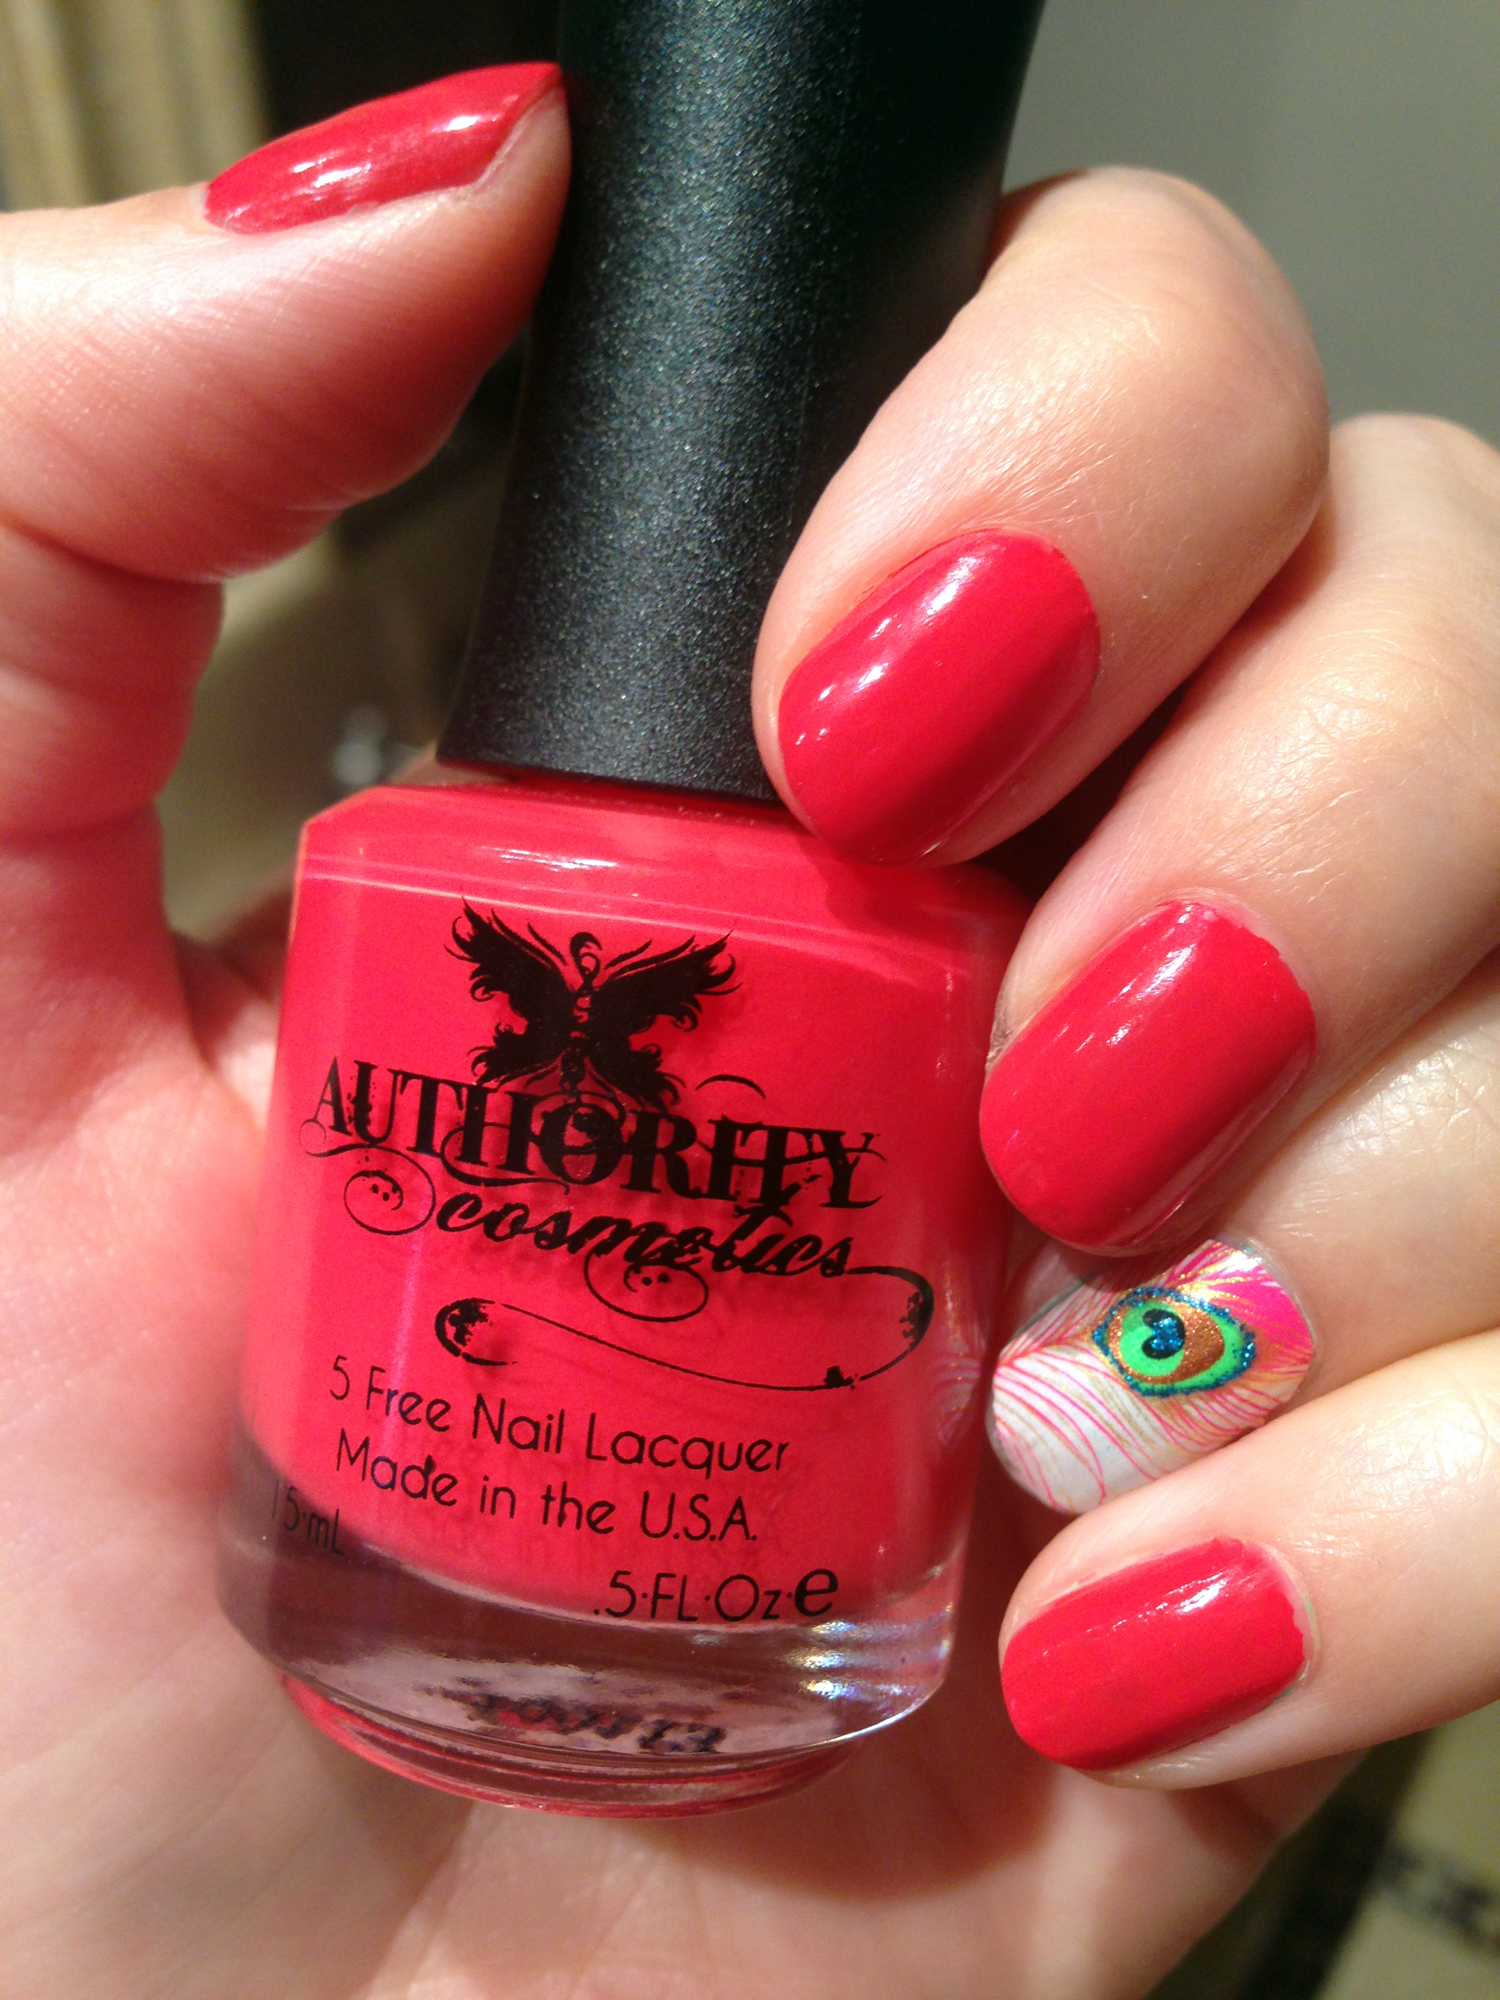 authority cosmetics nail polish